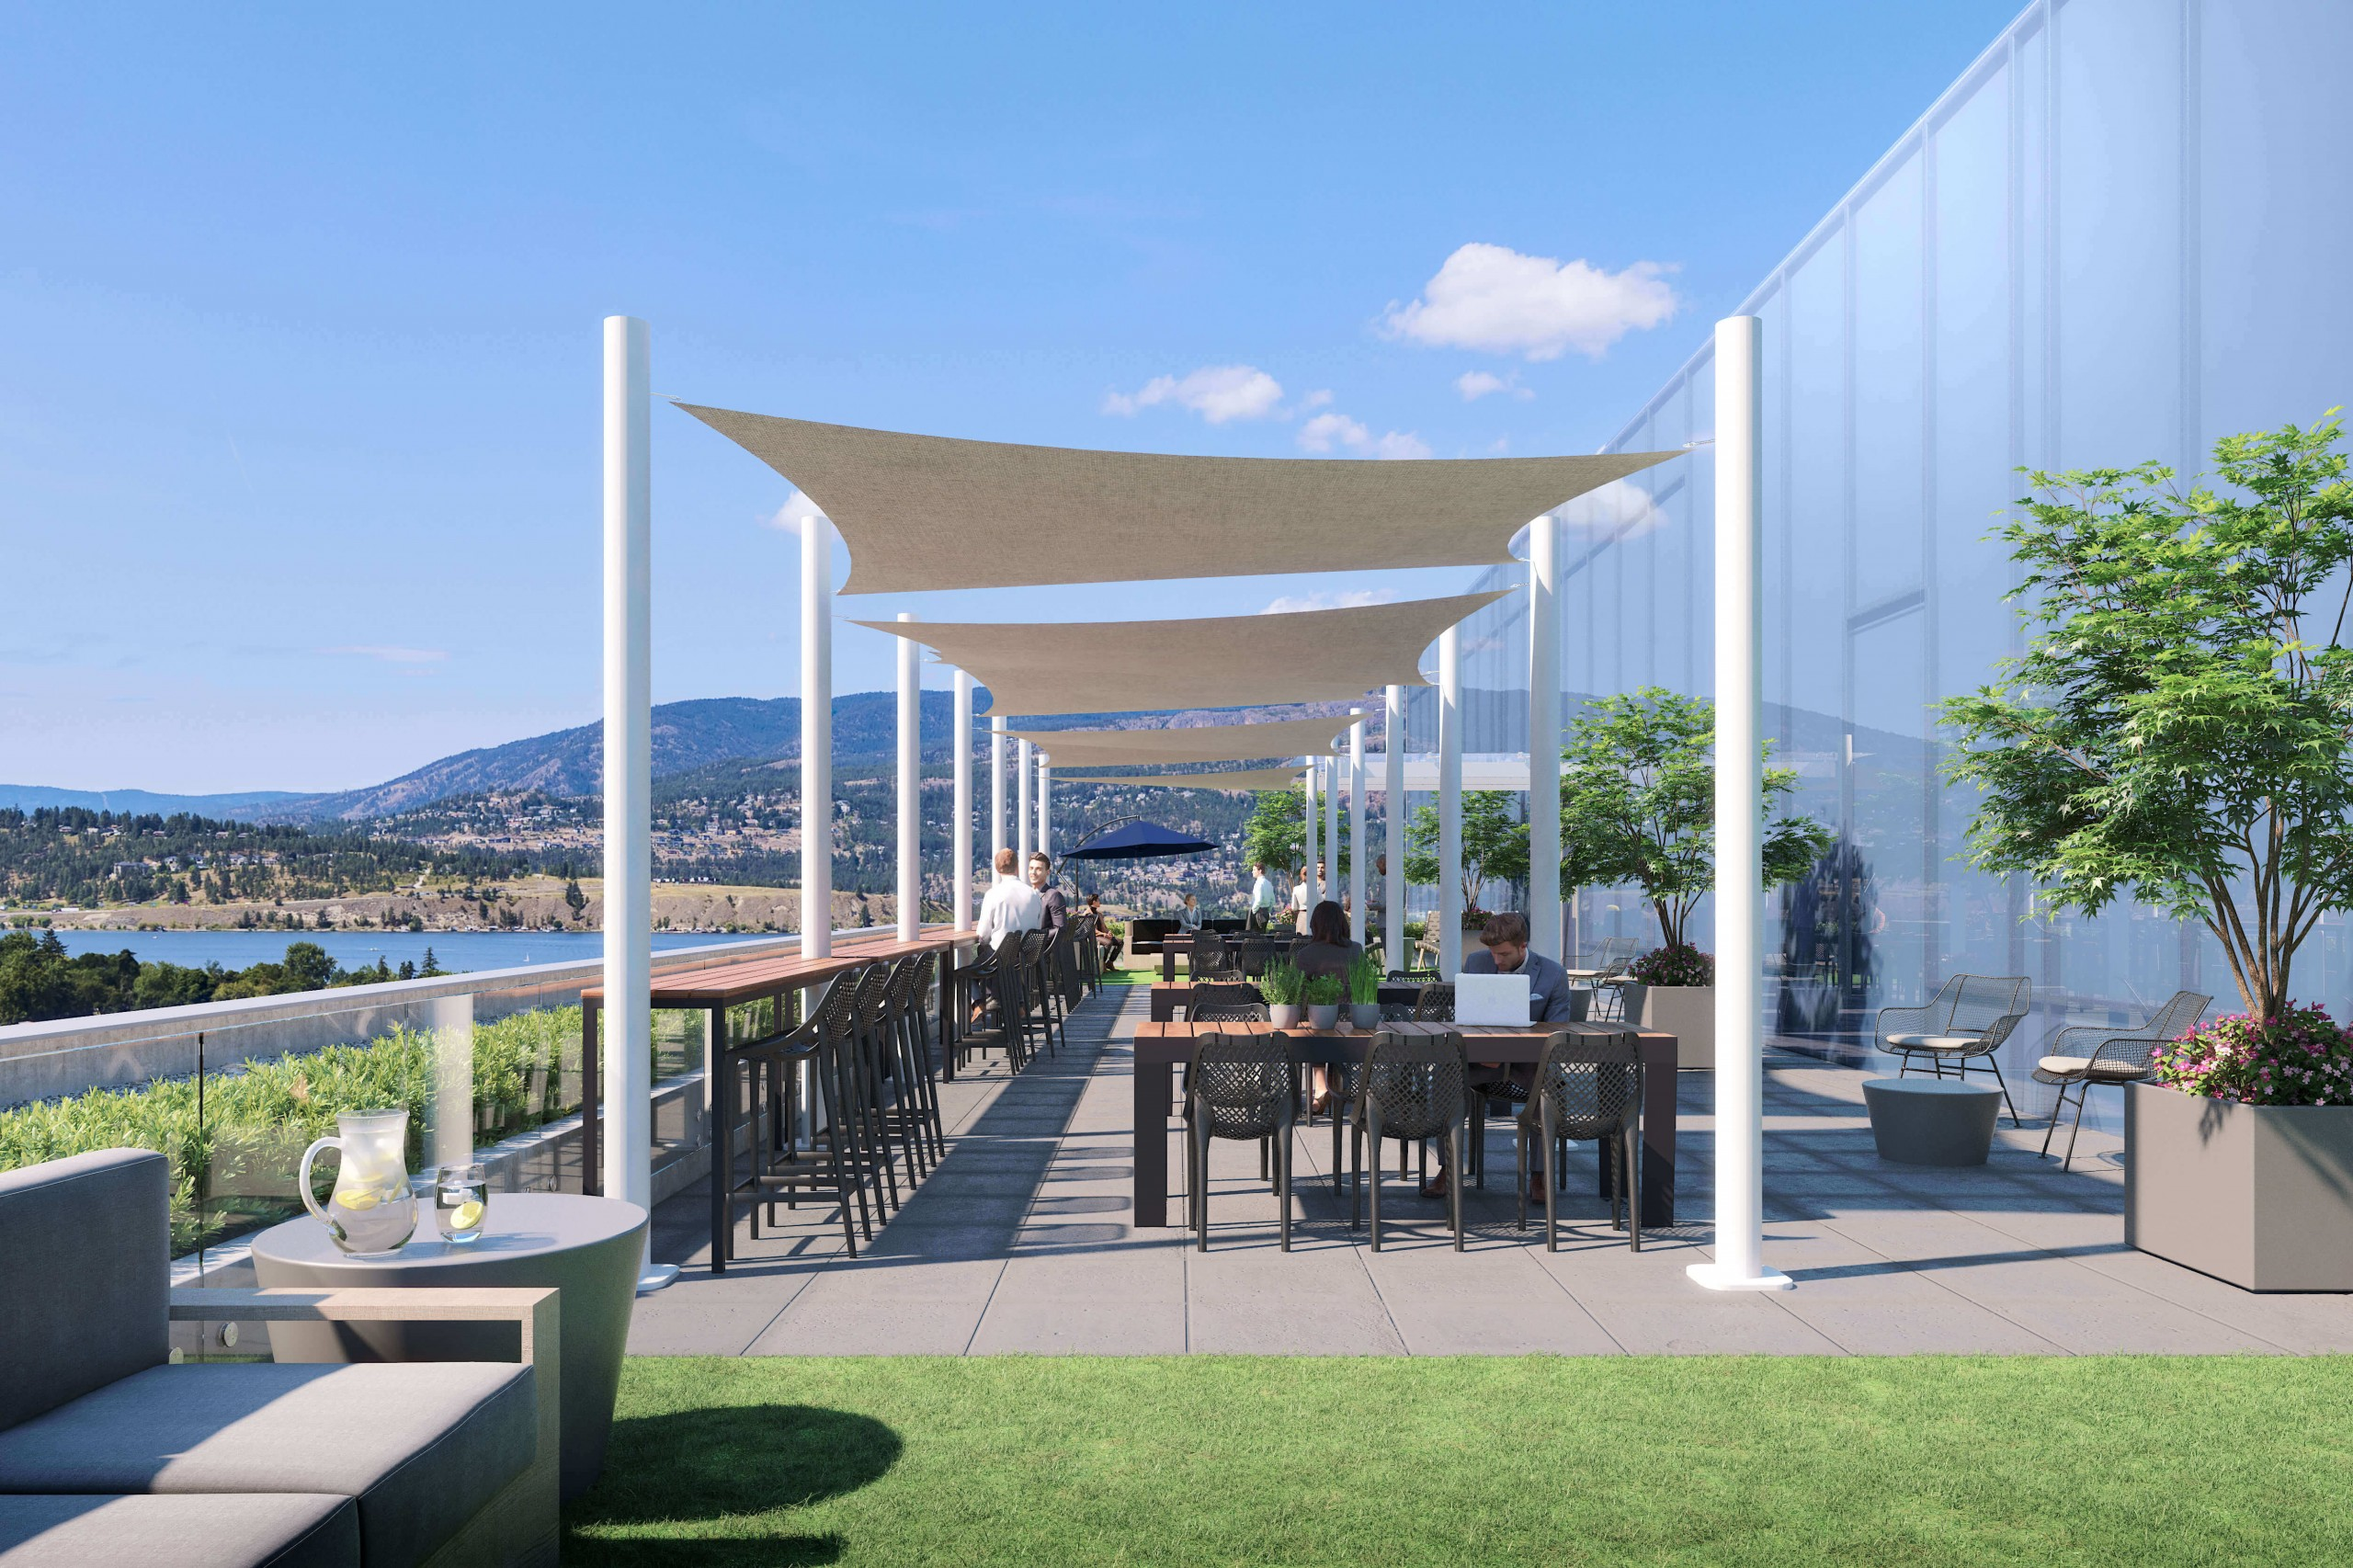 rooftop office space overlooking lake and mountains